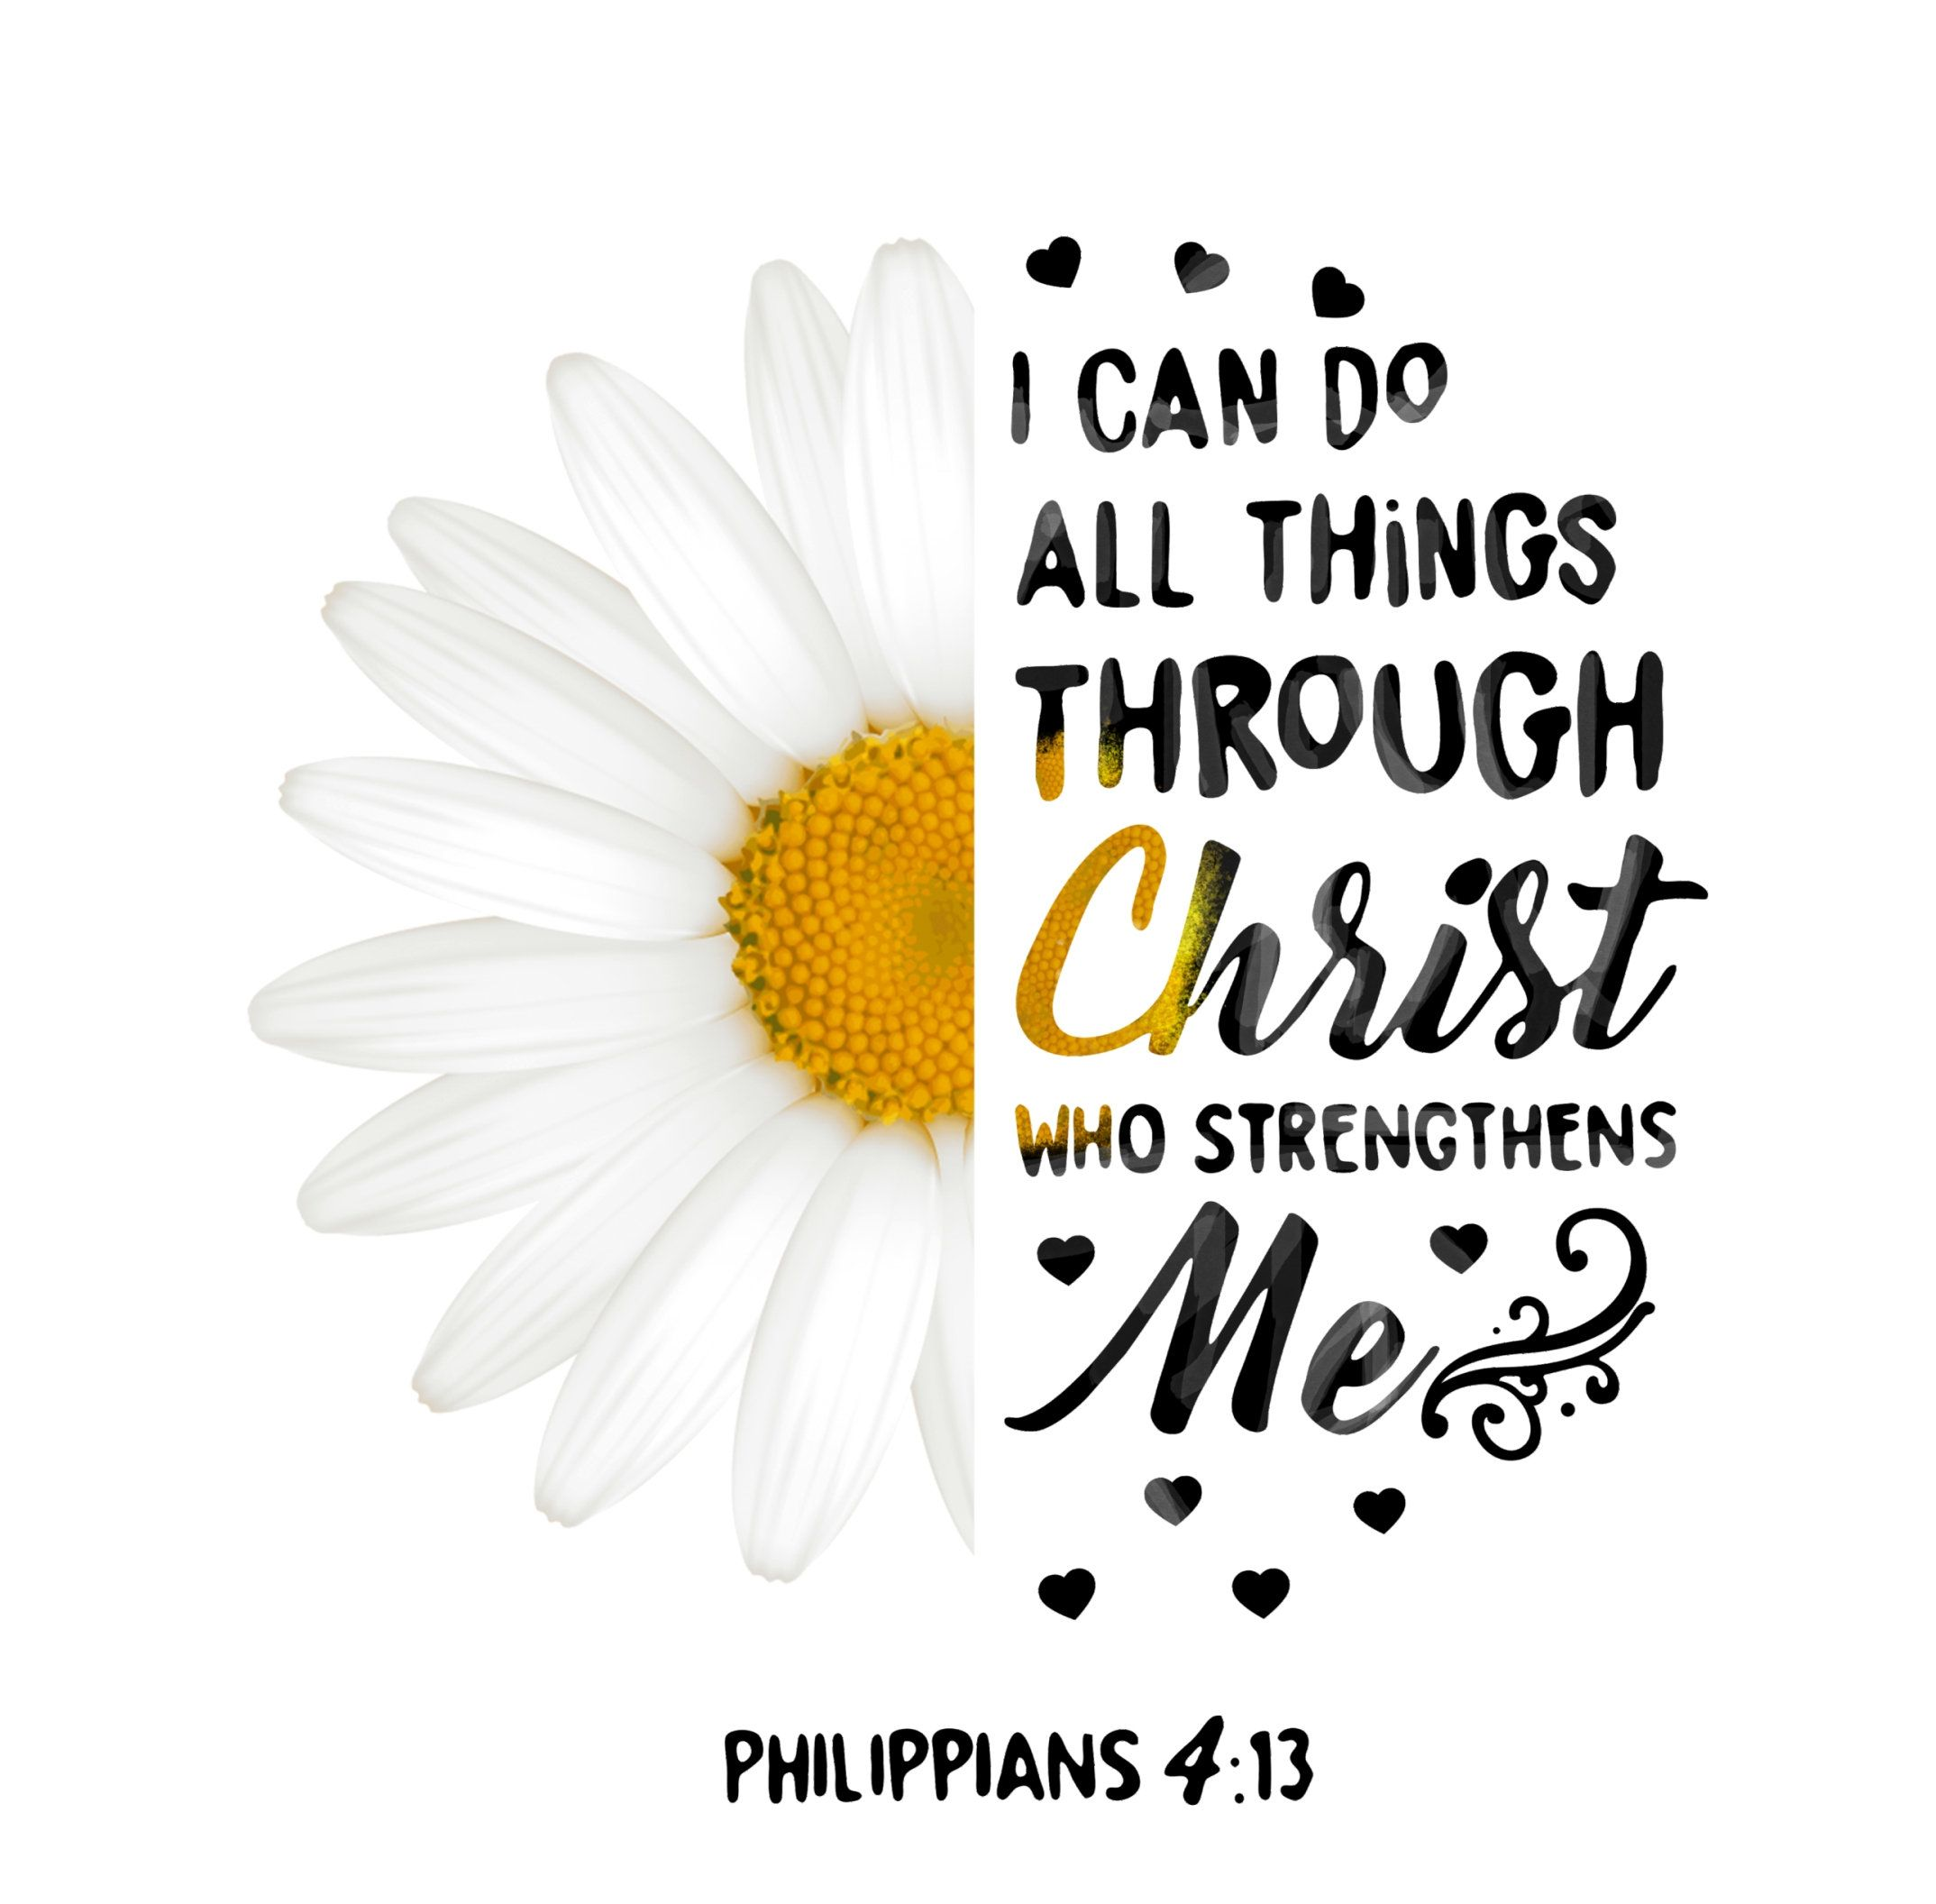 I can do all things through Christ who strenghthens me ...